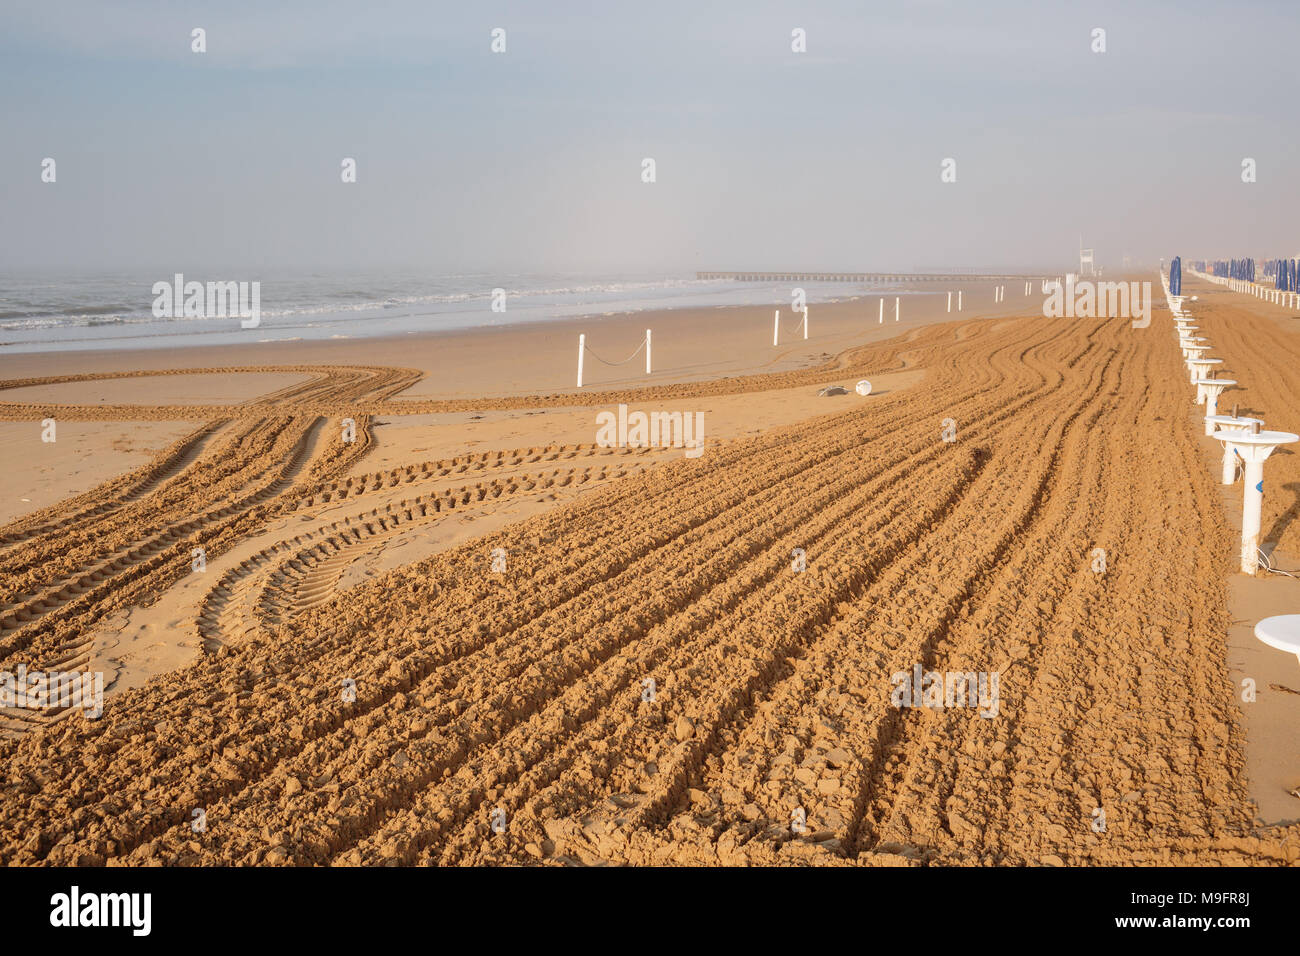 on the sandy beach cleaning, after winter, preparation for the holiday season in Italy. Wooden trunks in on the seashore after a sea storm. dense sea breeze at dawn - Stock Image